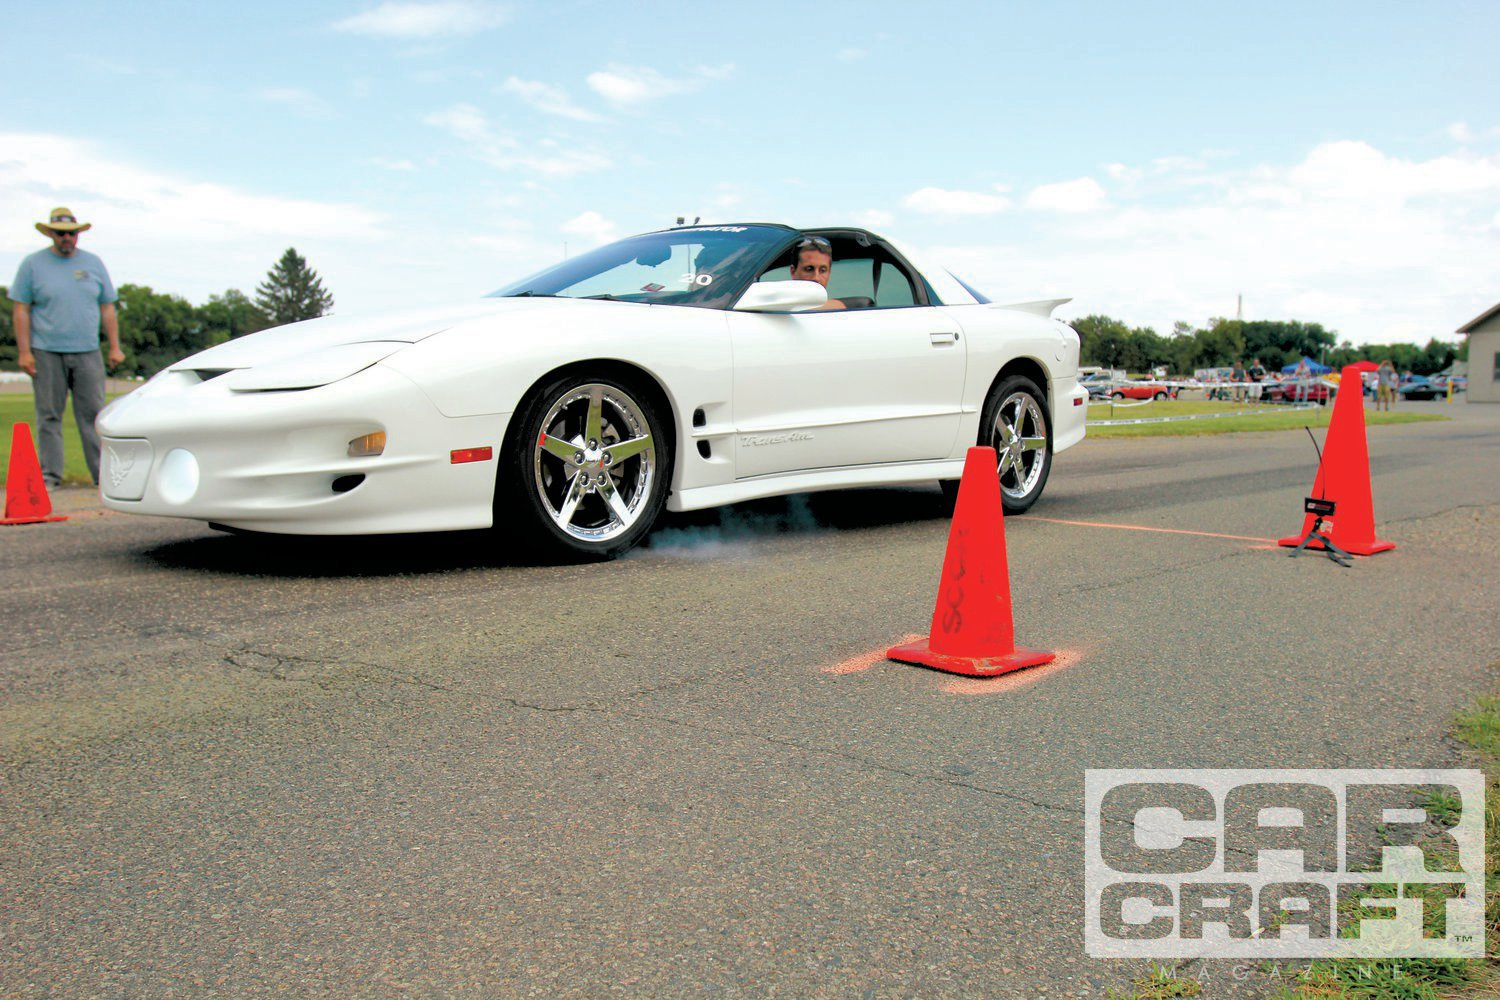 Fourth-generation F-bodies like Eric Sward's '89 Trans Am offer an excellent suspension that can be very quick on the autocross with a few suspension mods. Eric finished Tenth overall in the Late Model class